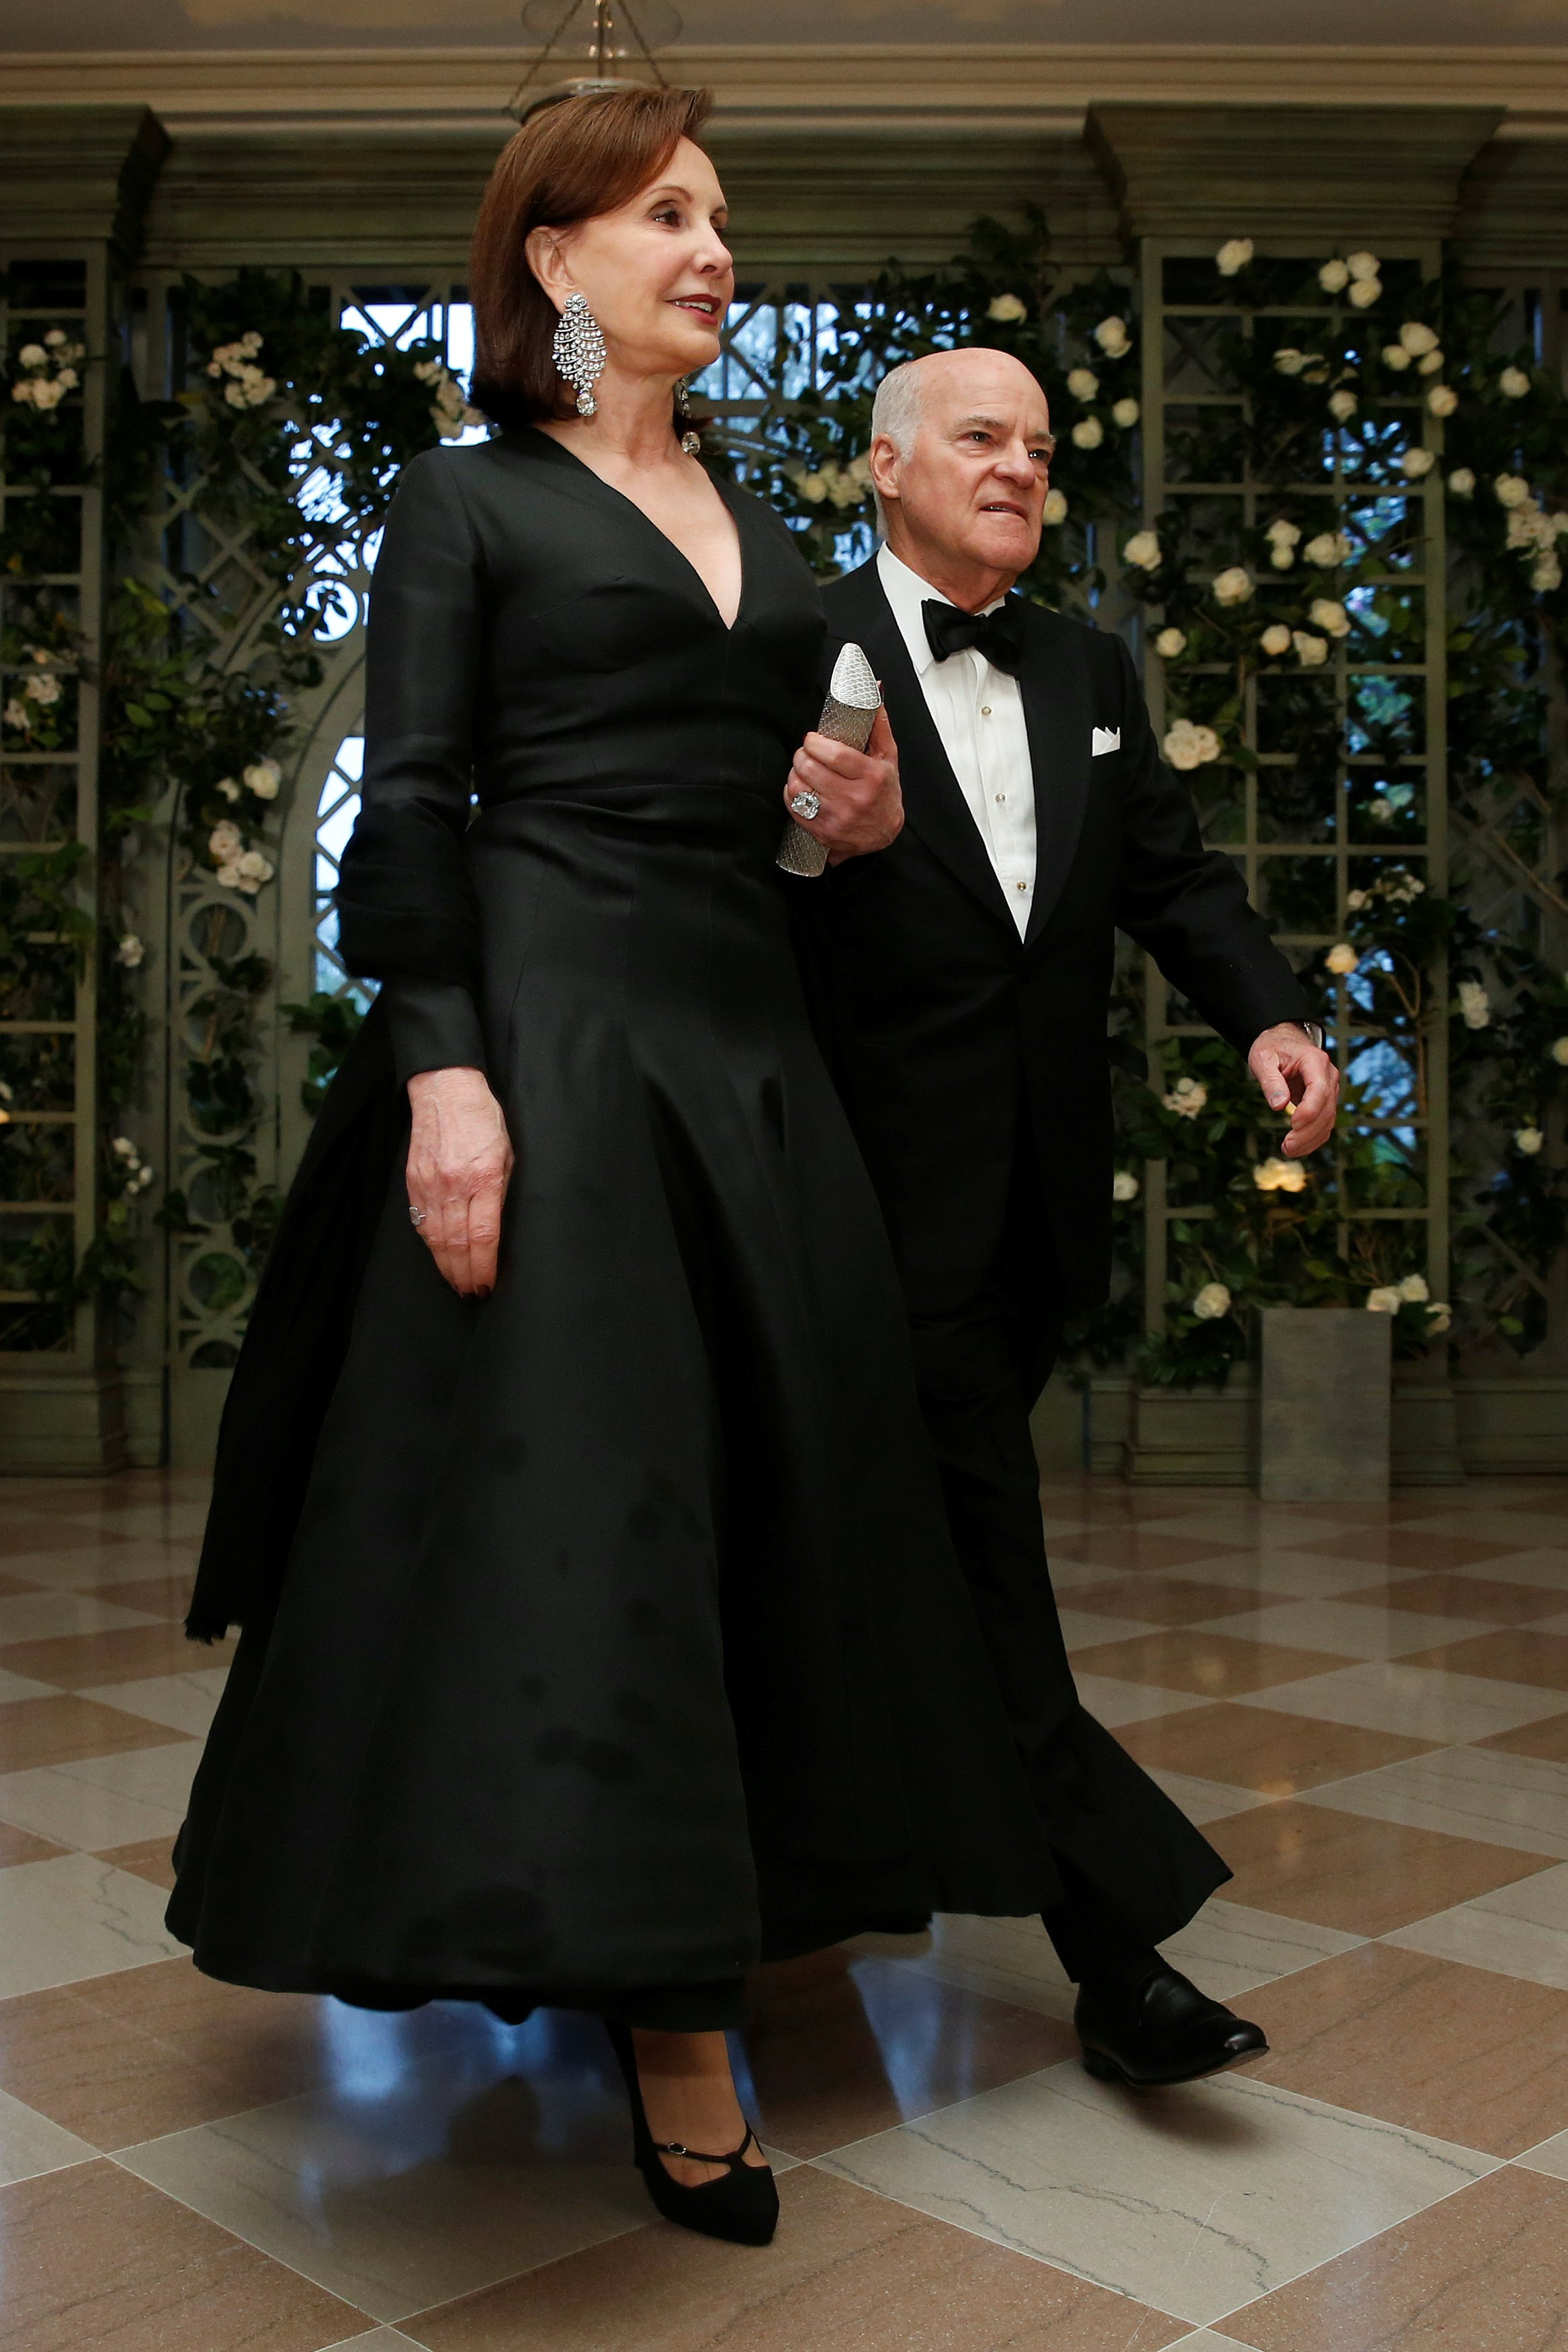 Henry Kravis, a co-founder of Kohlberg Kravis Roberts & Co. and his wife Marie-Josee Kravis arrive for the State Dinner in honor of French President Emmanuel Macron at the White House in Washington